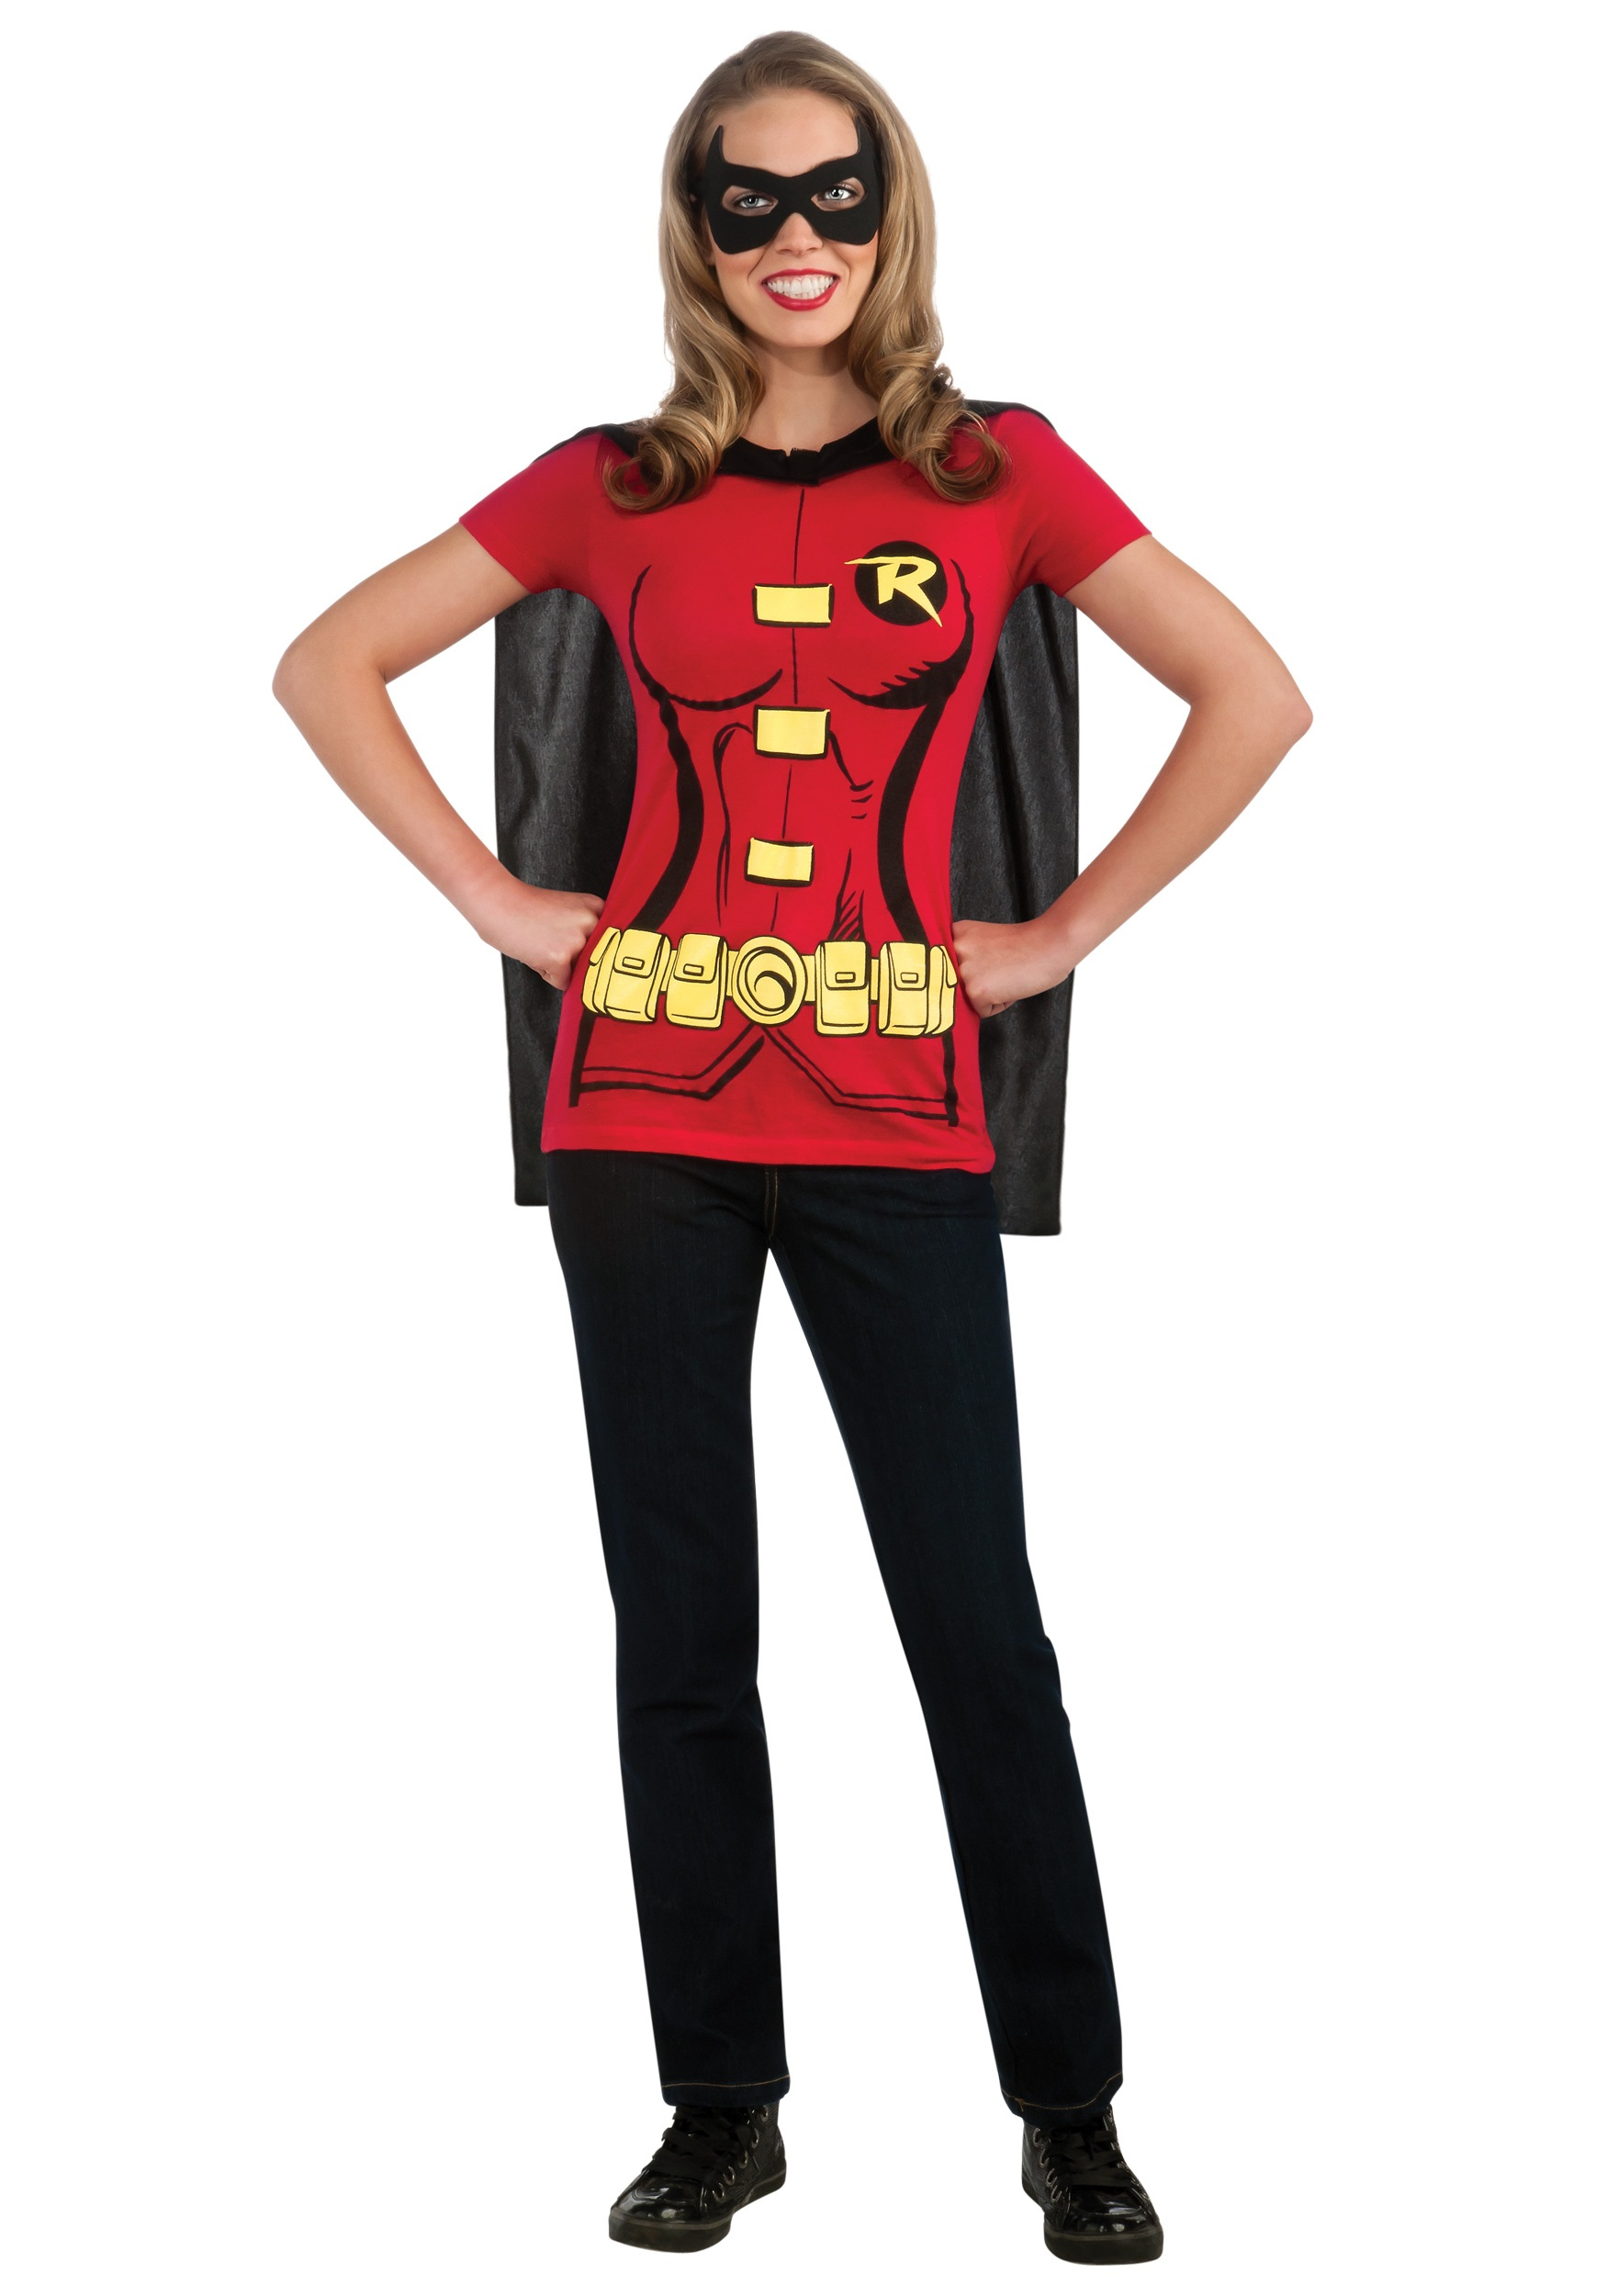 Womens Super Robin T-Shirt Costume  sc 1 st  Halloween Costume : superhero costumes for women diy  - Germanpascual.Com